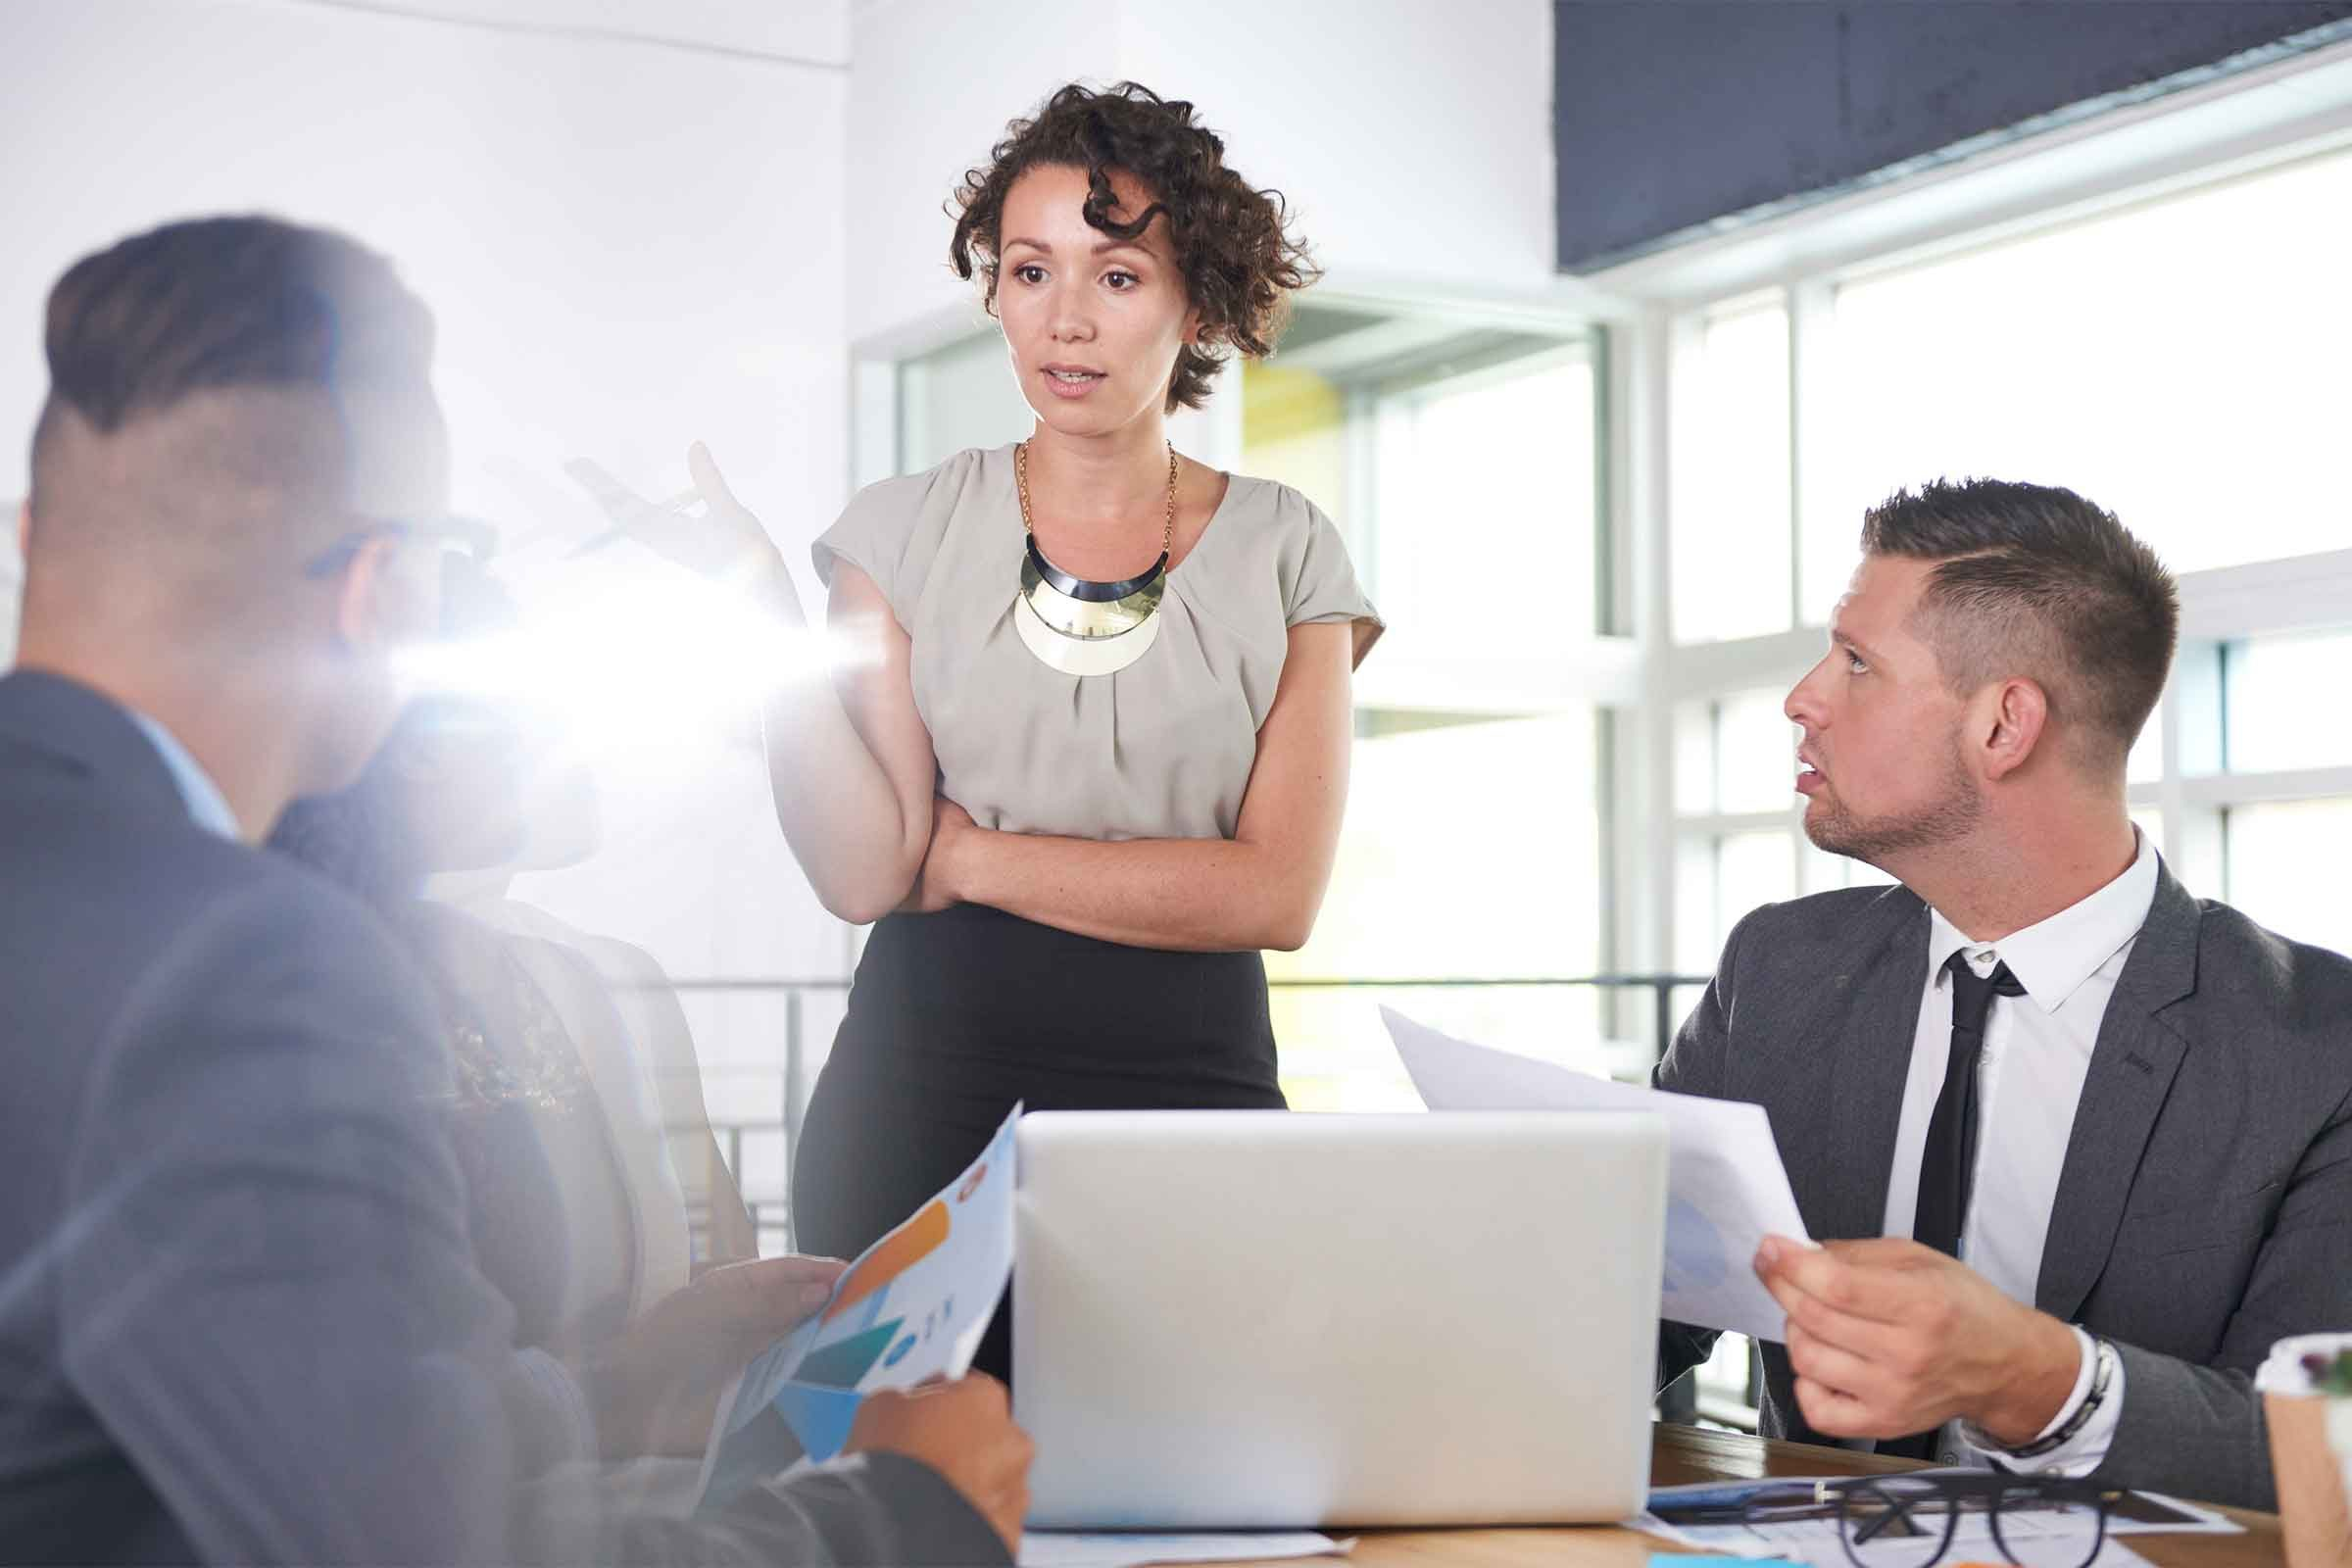 Secret Signs You're Getting Fired | Reader's Digest